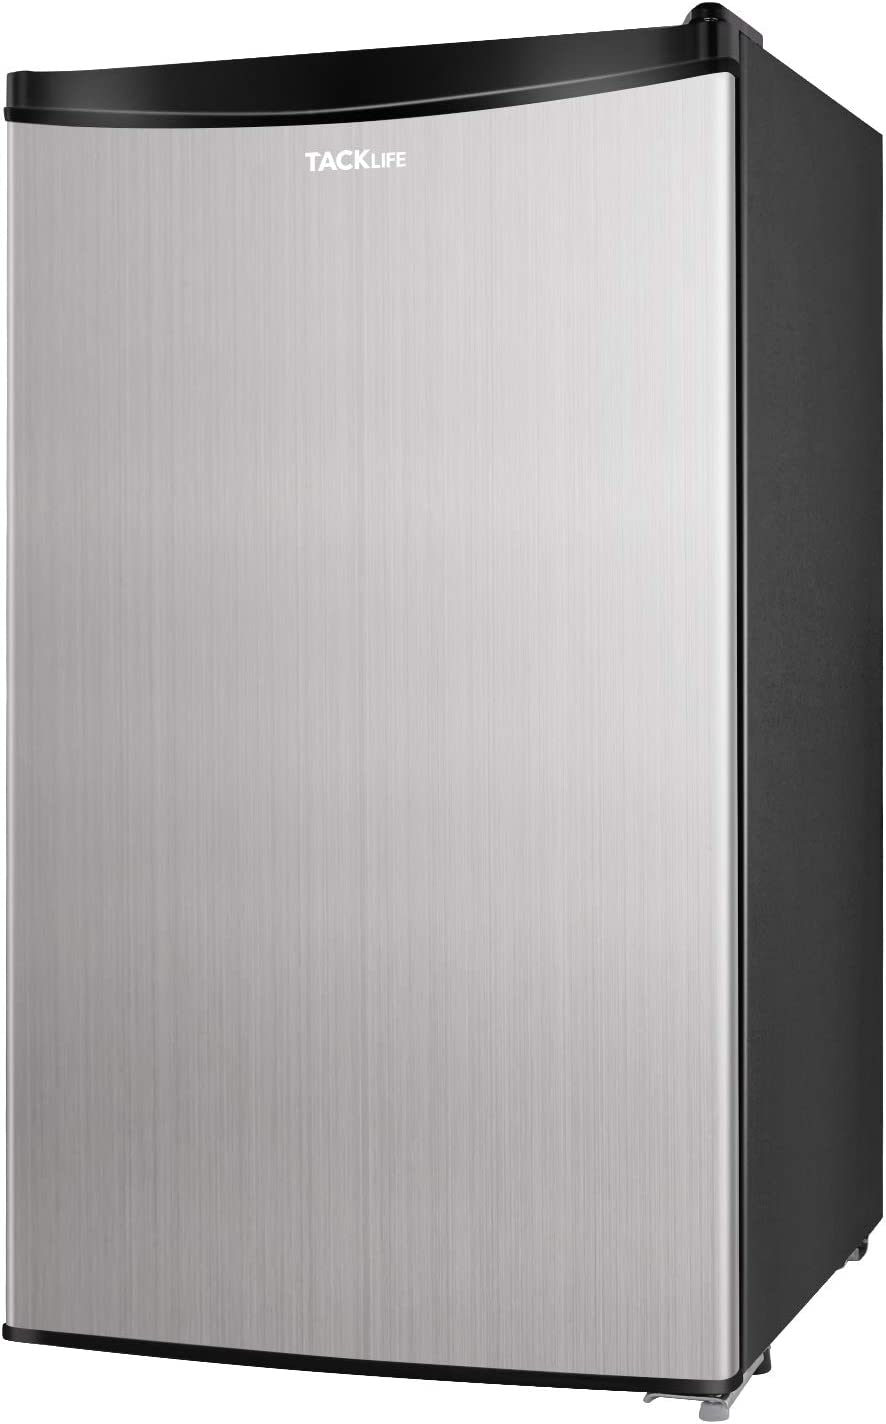 Compact Refrigerator, TACKLIFE 3.2 Cu Ft Mini Fridge with Freezer, Energy Star Rating, 37DB Low noise, for Bedroom Office or Dorm with Adjustable Temperature, Removable Glass Shelves, Silver- MVSFR321